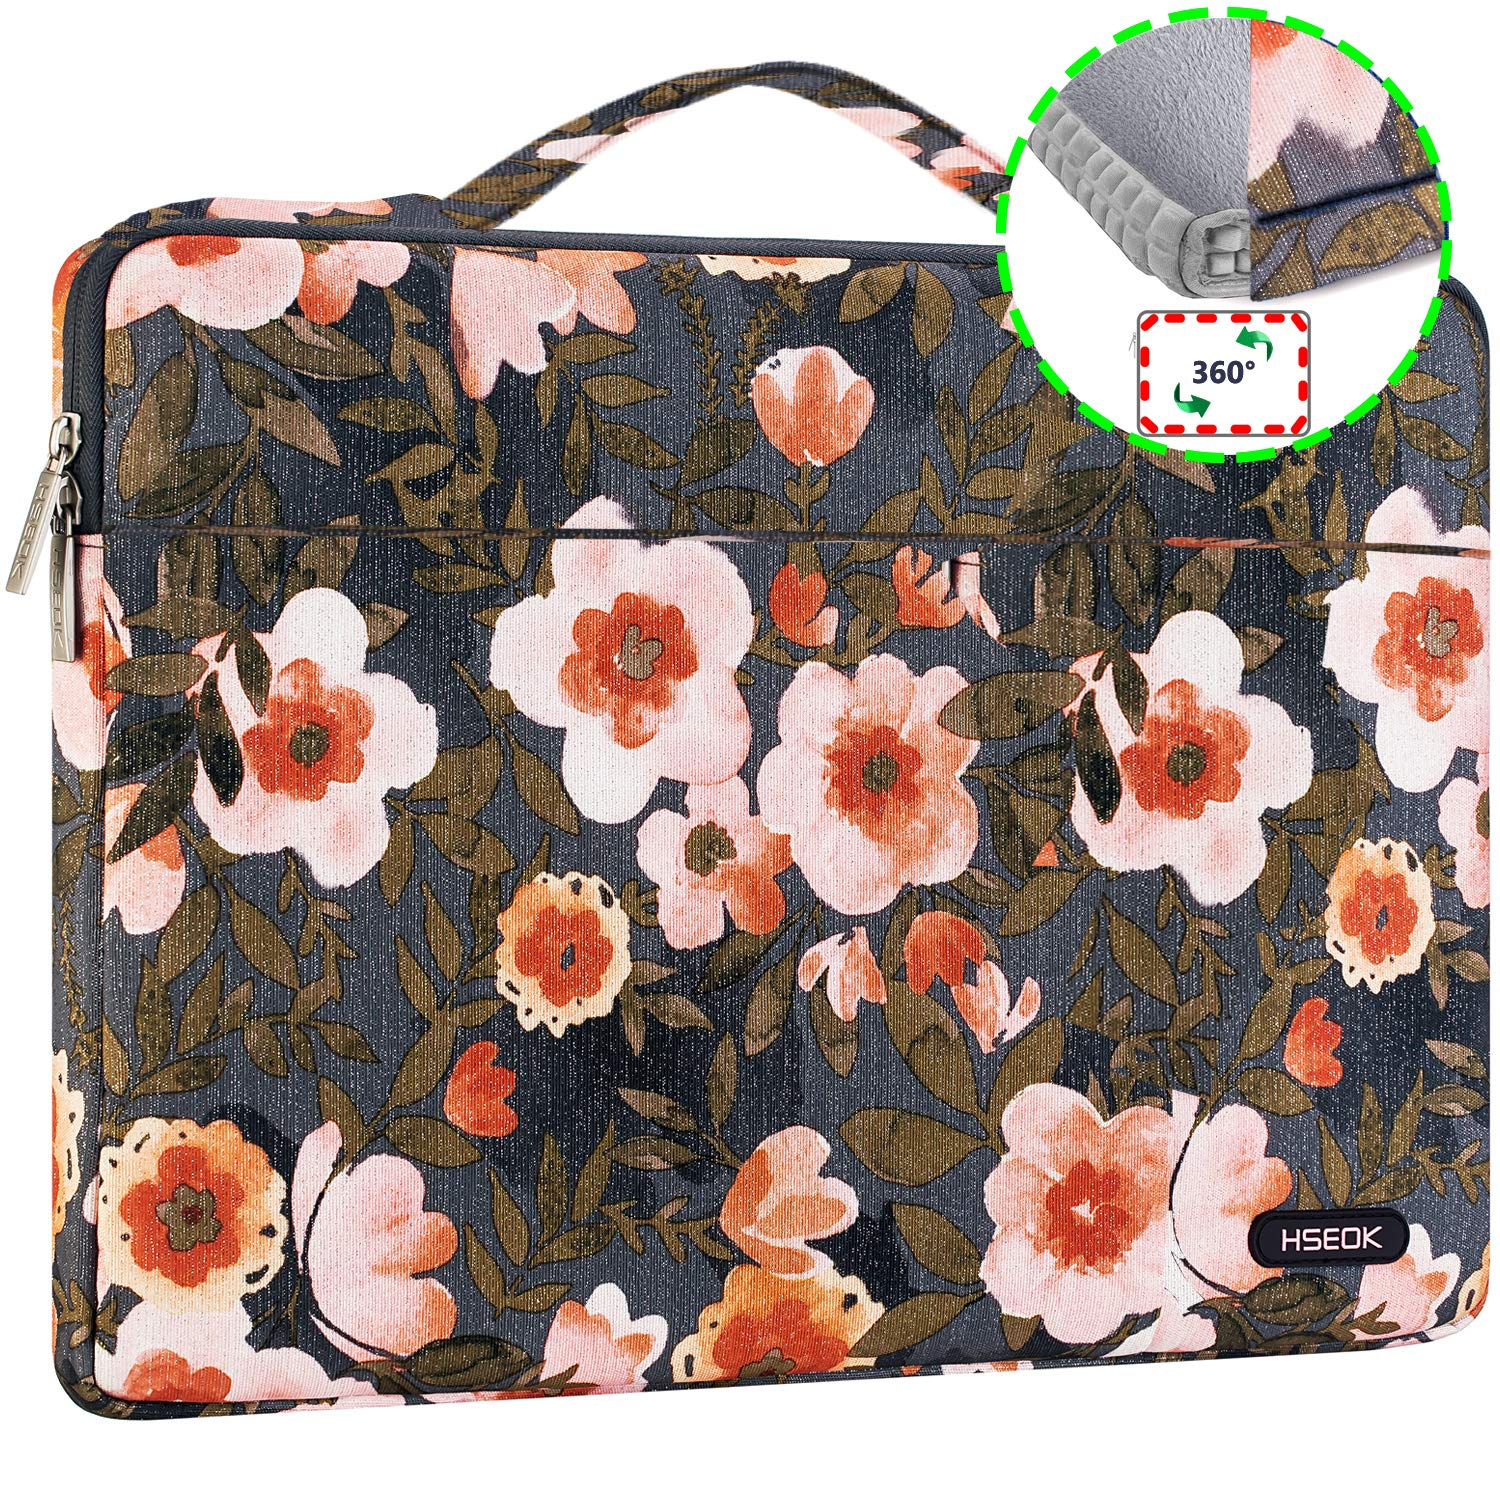 6a19af82d286 HSEOK Golden Flower Laptop Sleeve 15.6-Inch Case Briefcase for Most 15-15.6  Inch Notebook Dell/Ausu/Acer/HP/Toshiba/Lenovo,Spill and Drop Resistant ...